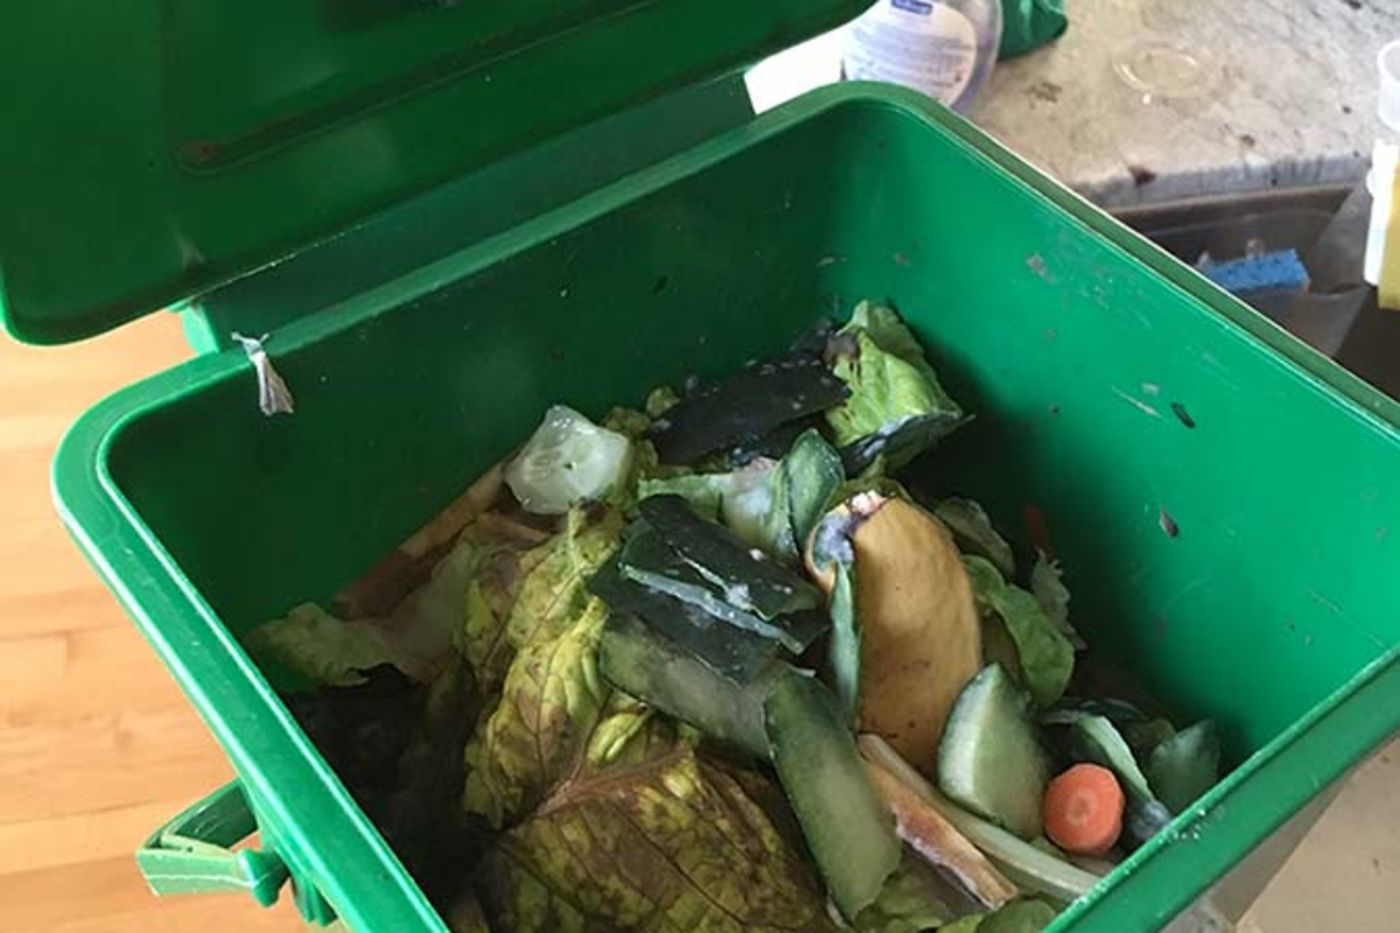 A square green bin filled with vegetable scraps